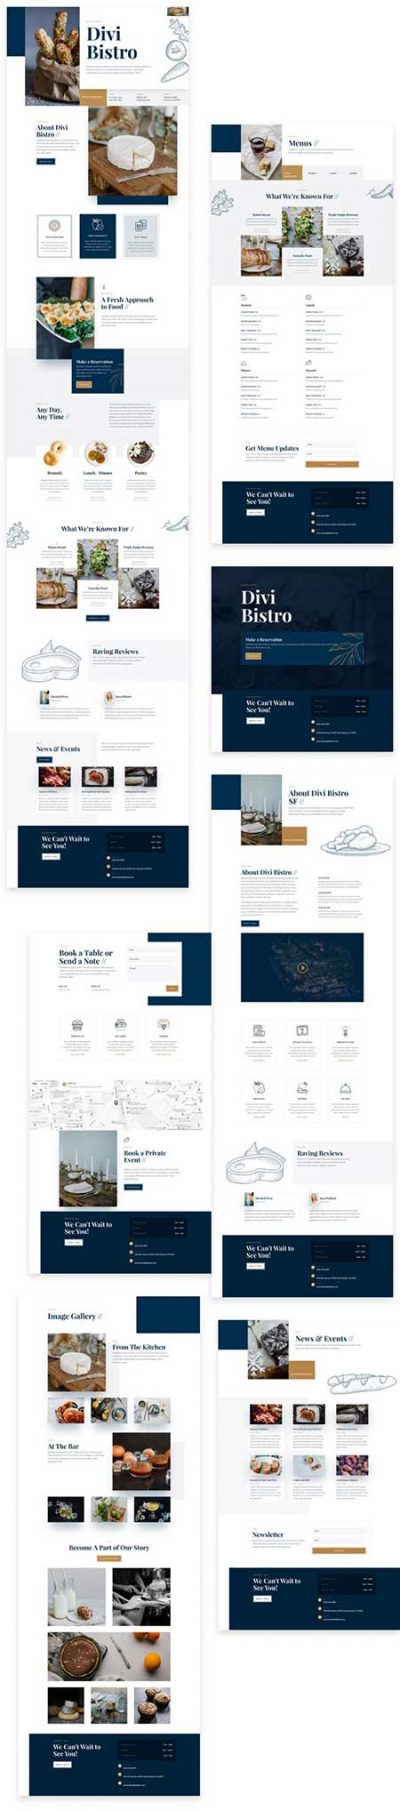 Divi bistro website template